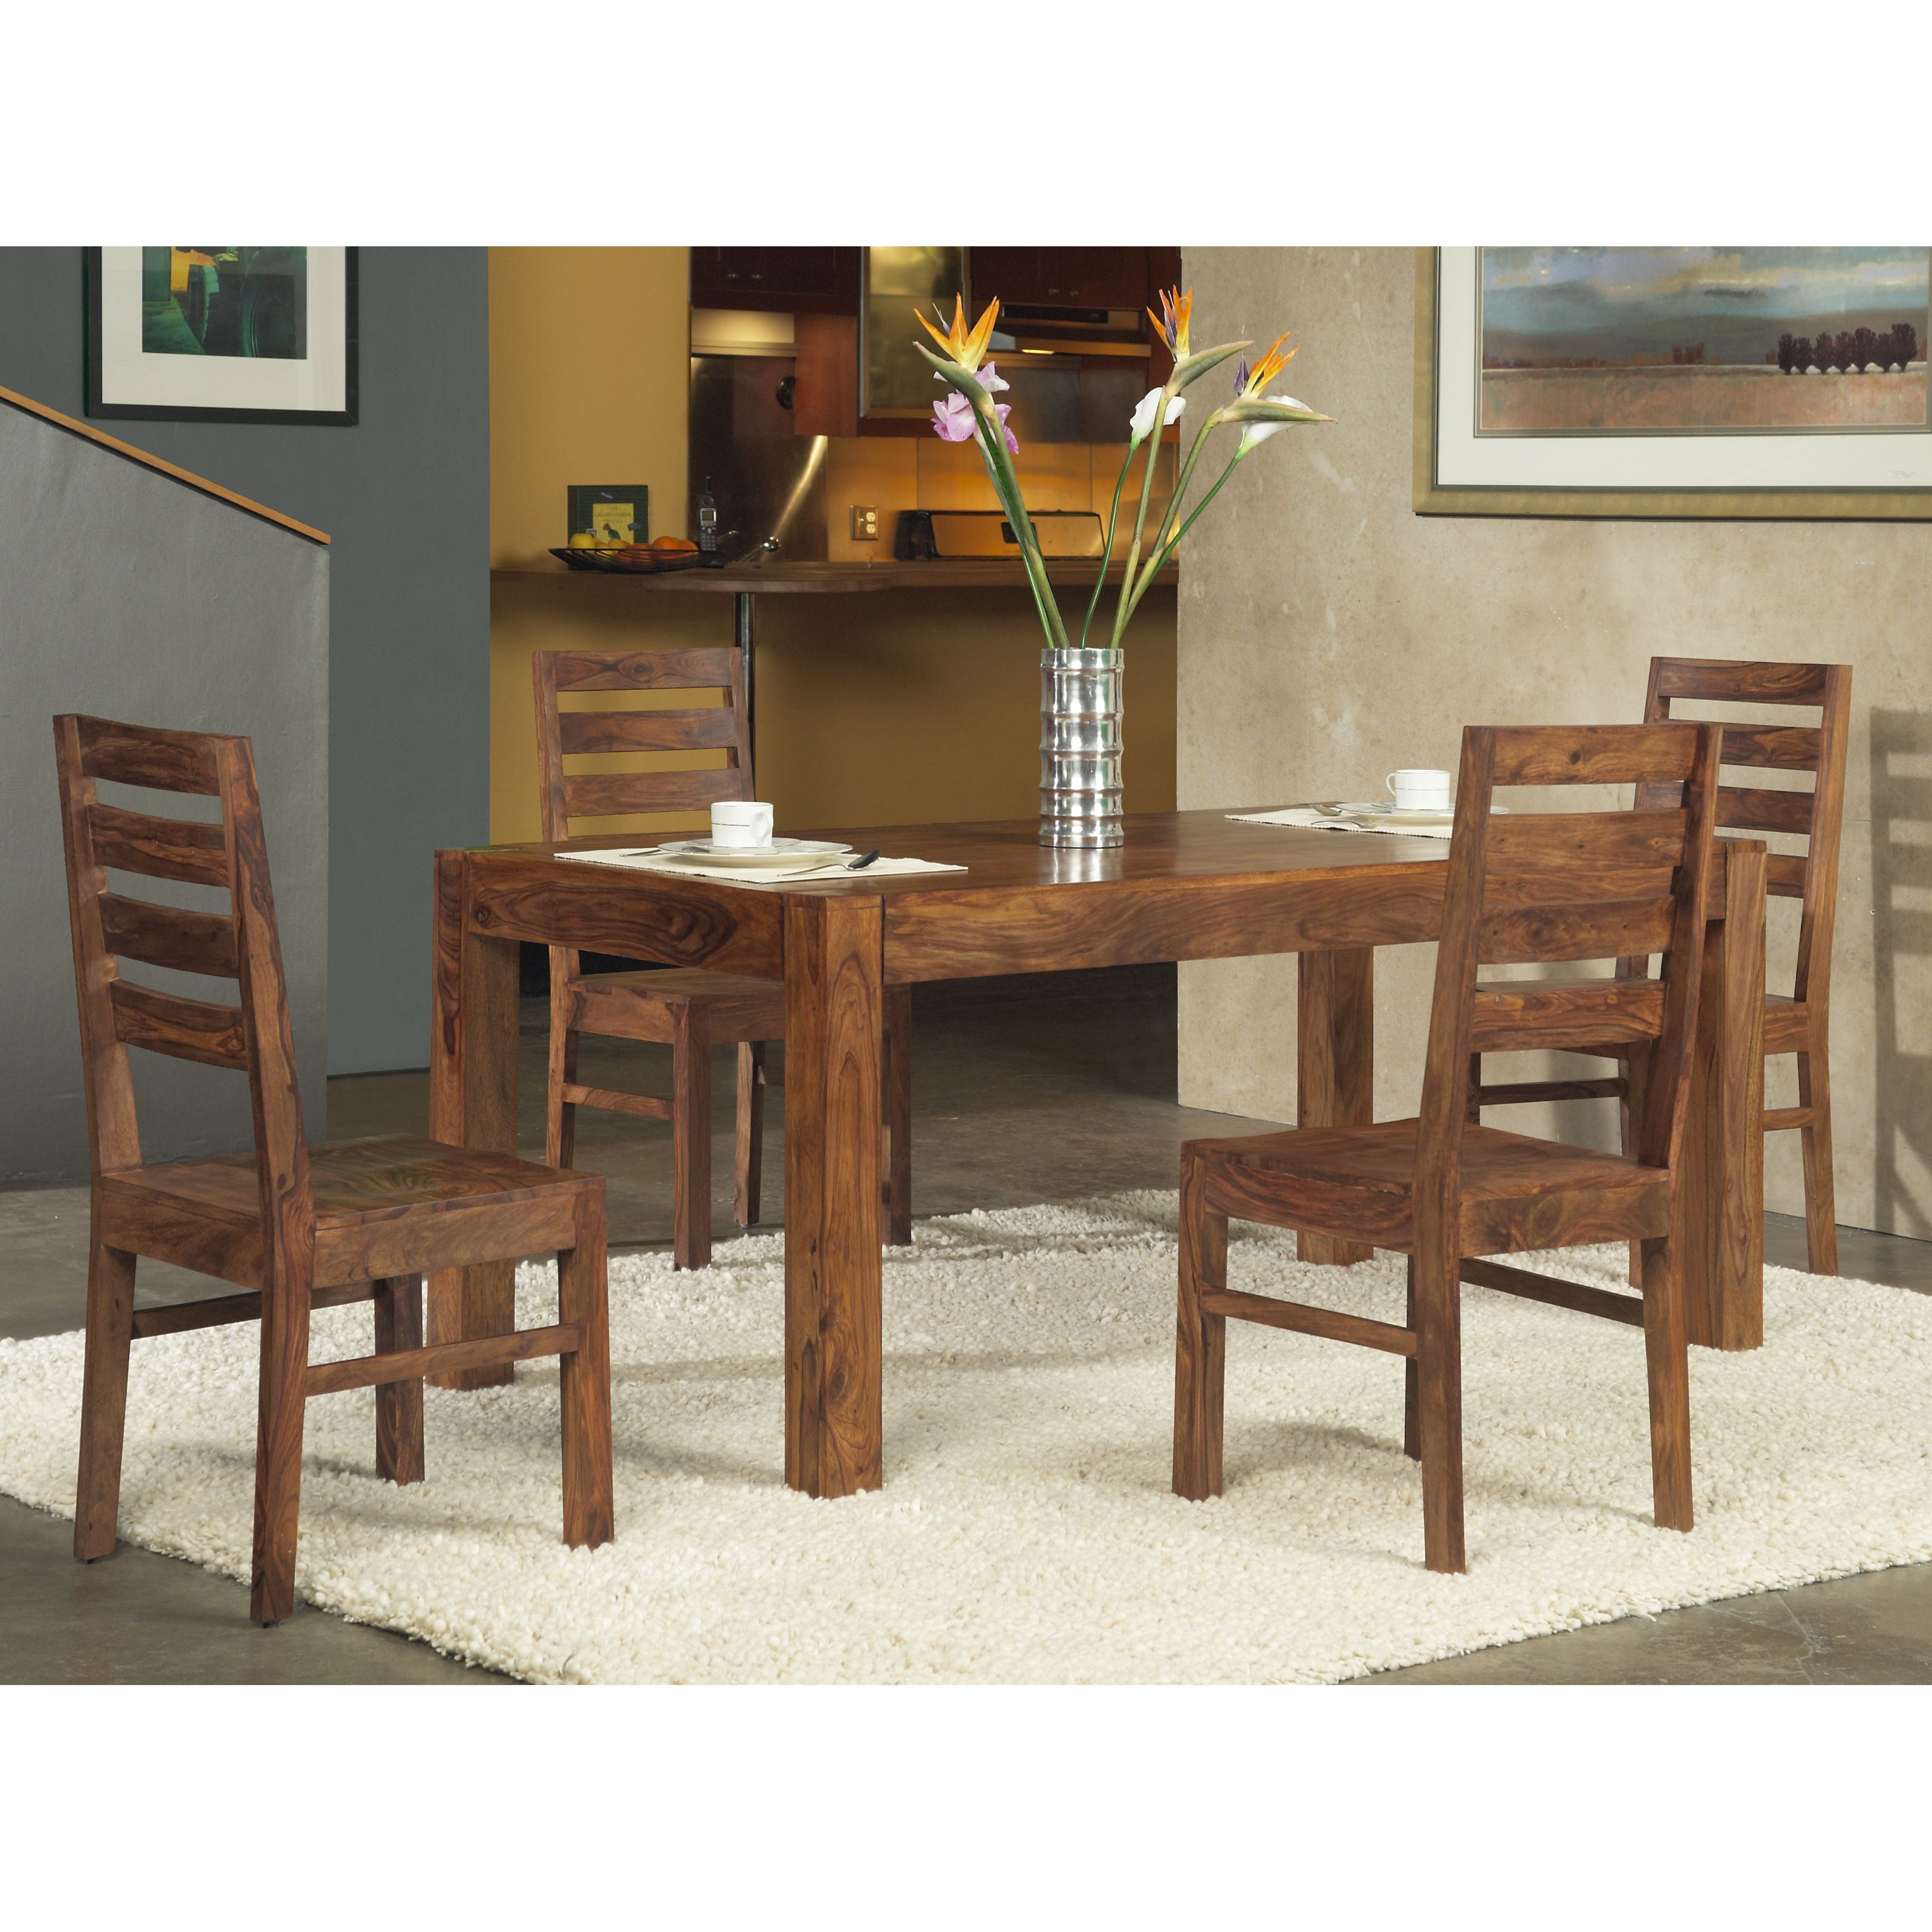 Modus Genus 5 Piece Dining Table Set by Modus Furniture International